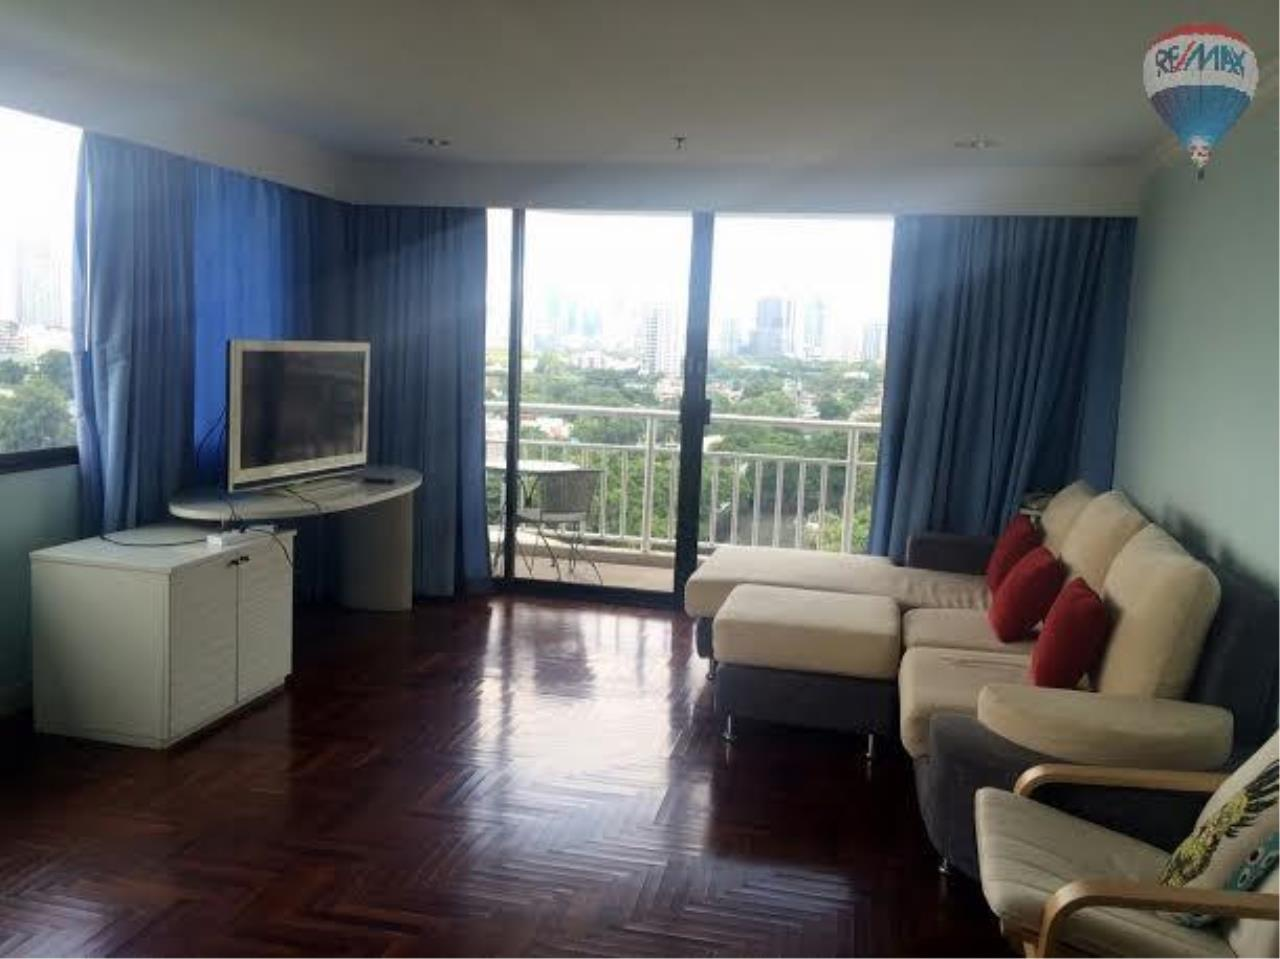 RE/MAX Properties Agency's 2 bedroom 130 Sq.M. for rent at Lake Green 1